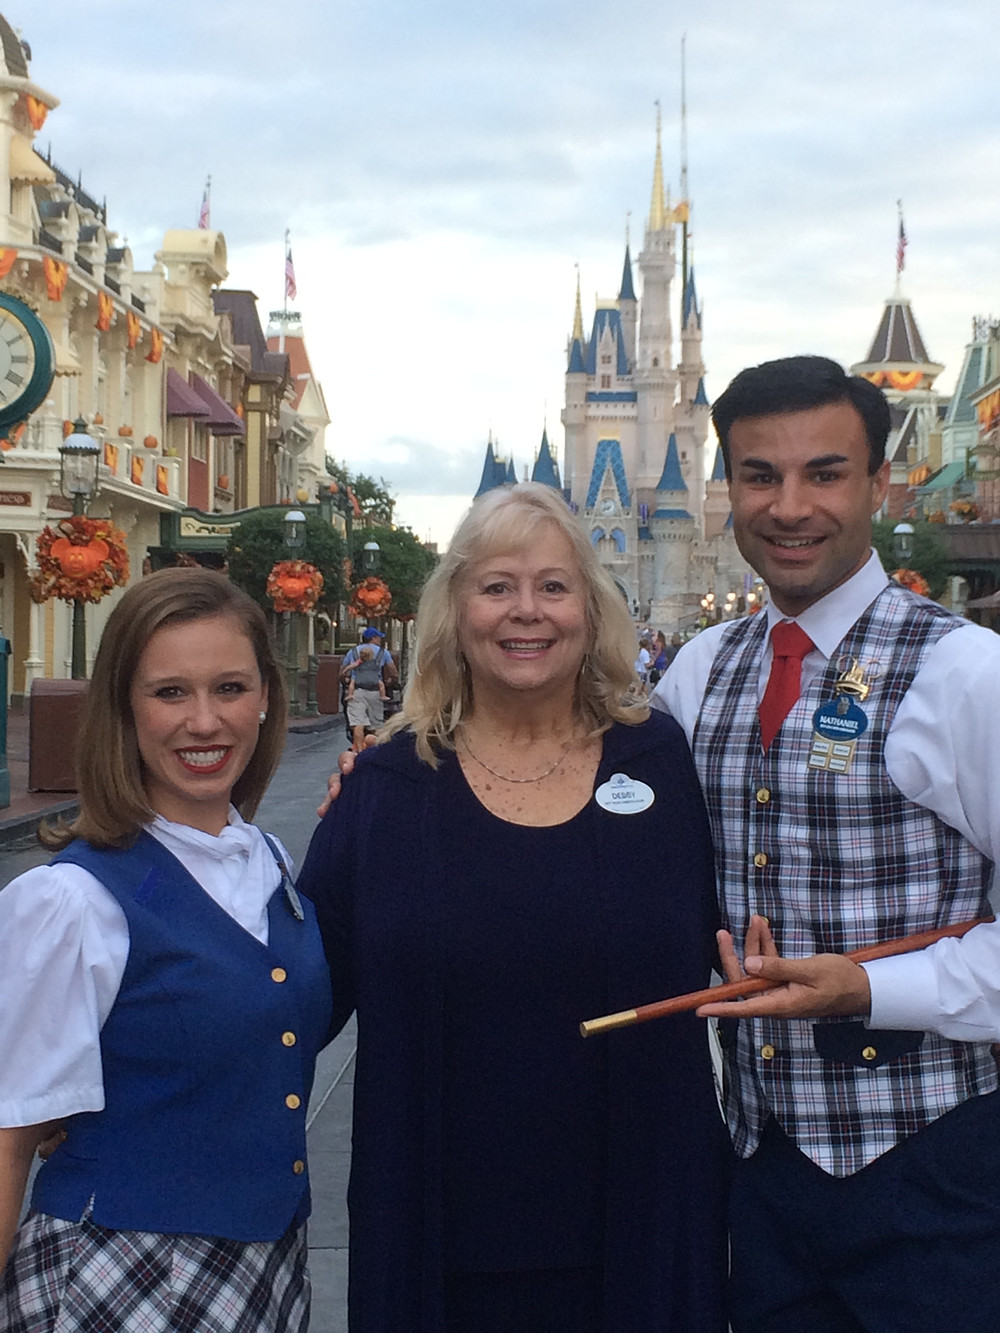 Debby Dane Brown, first Walt Disney World Ambassador in front of Cinderella Castle